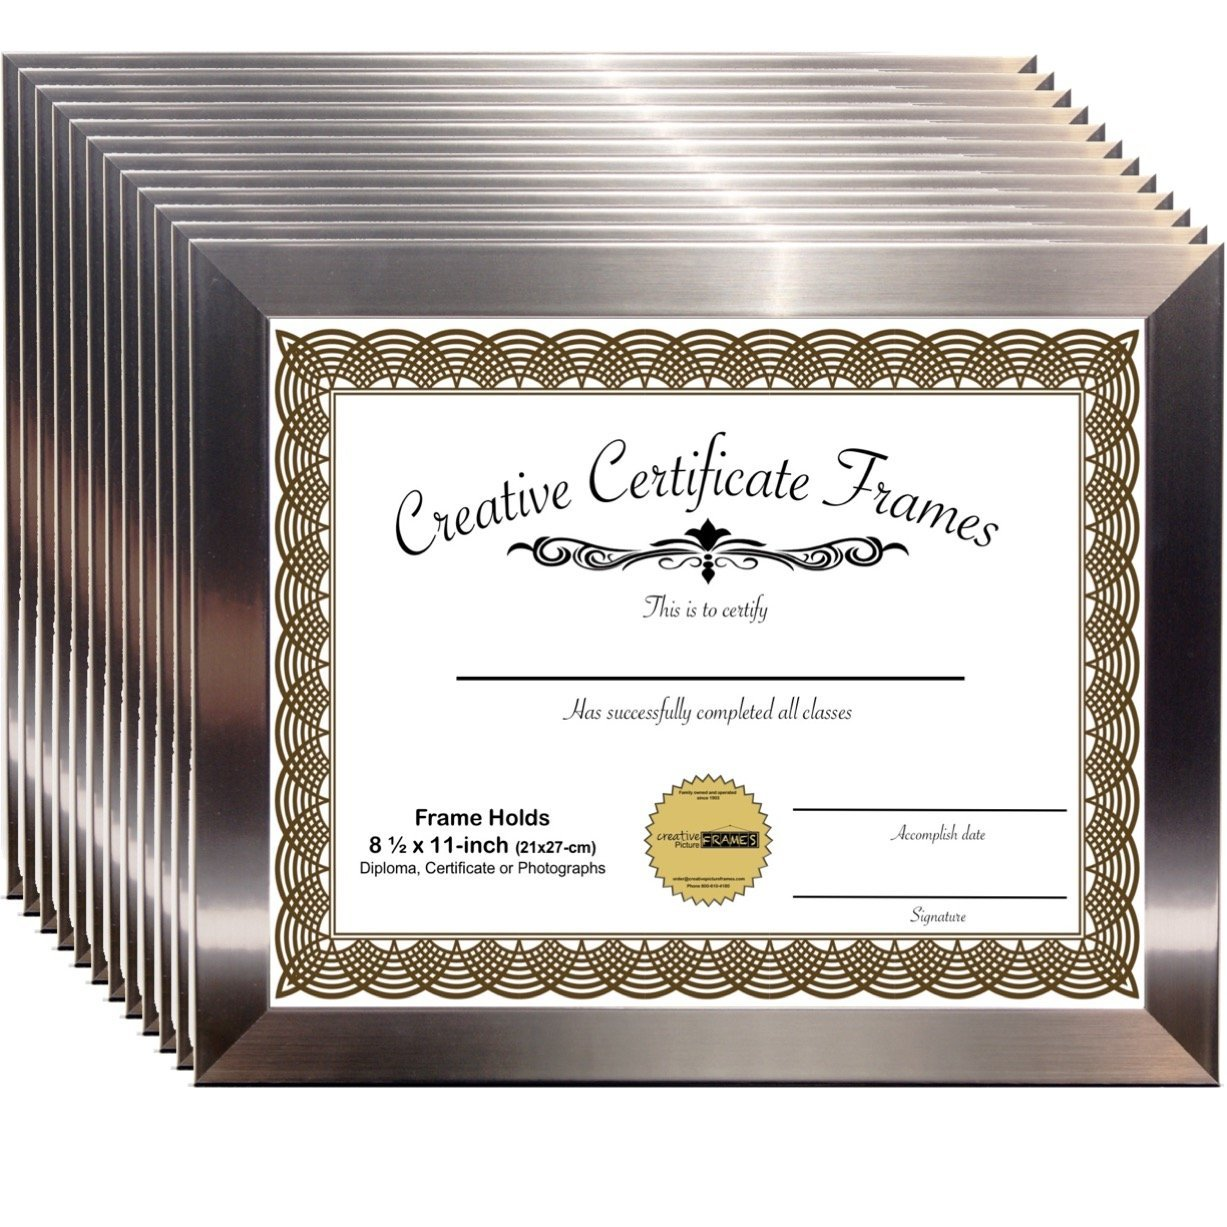 CreativePF [6I9P-8.5x11ss] Stainless Steel Document Frame Displays 8.5 by 11-inch Certificate, Graduation, University, Diploma Frames with Stand & Wall Hanger (Pack of 12)